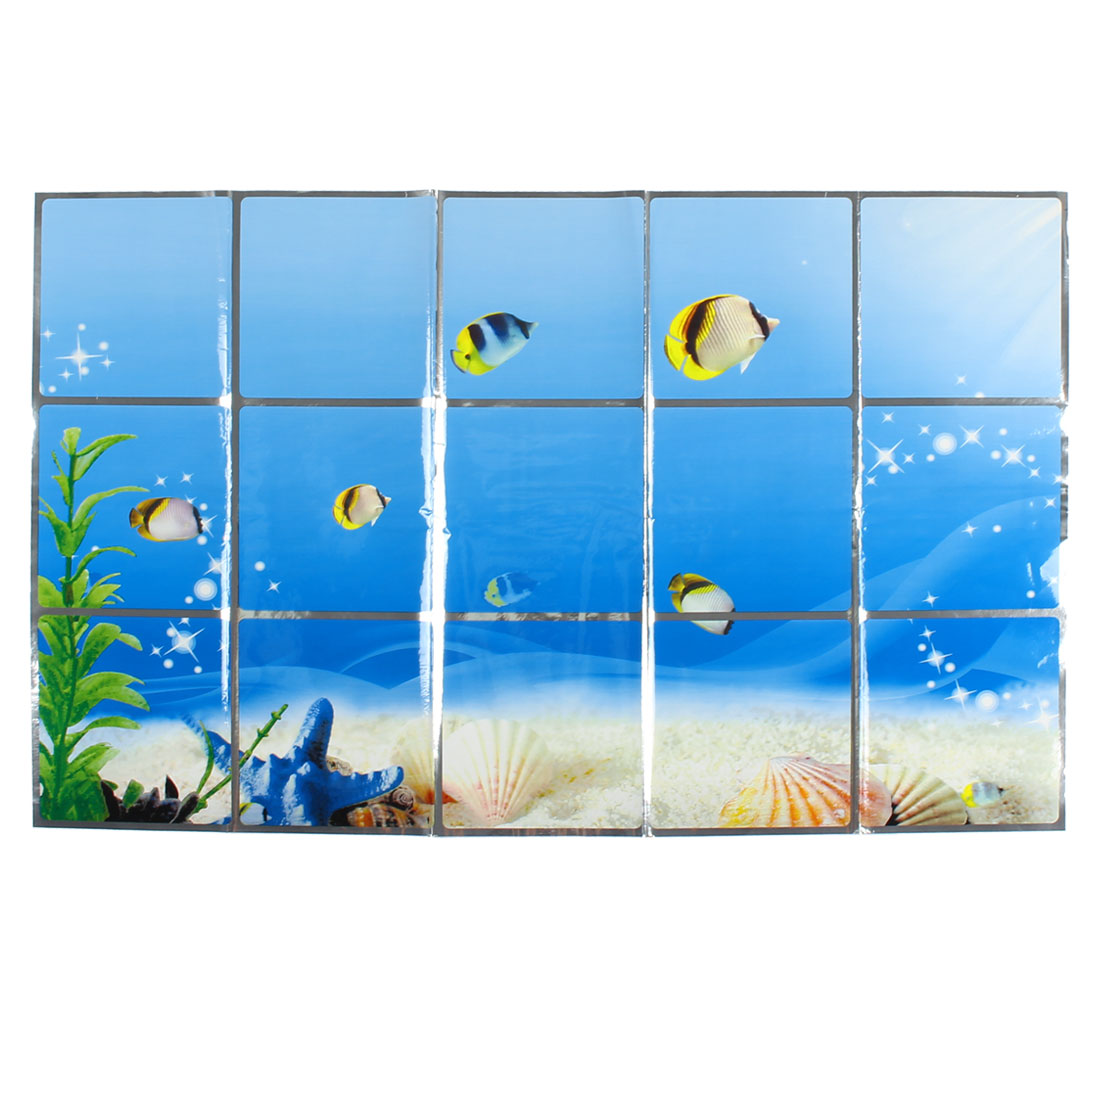 Kitchen Undersea World Pattern Removable Self-adhesive Oilproof Wall Window Sticker 75 x 45cm